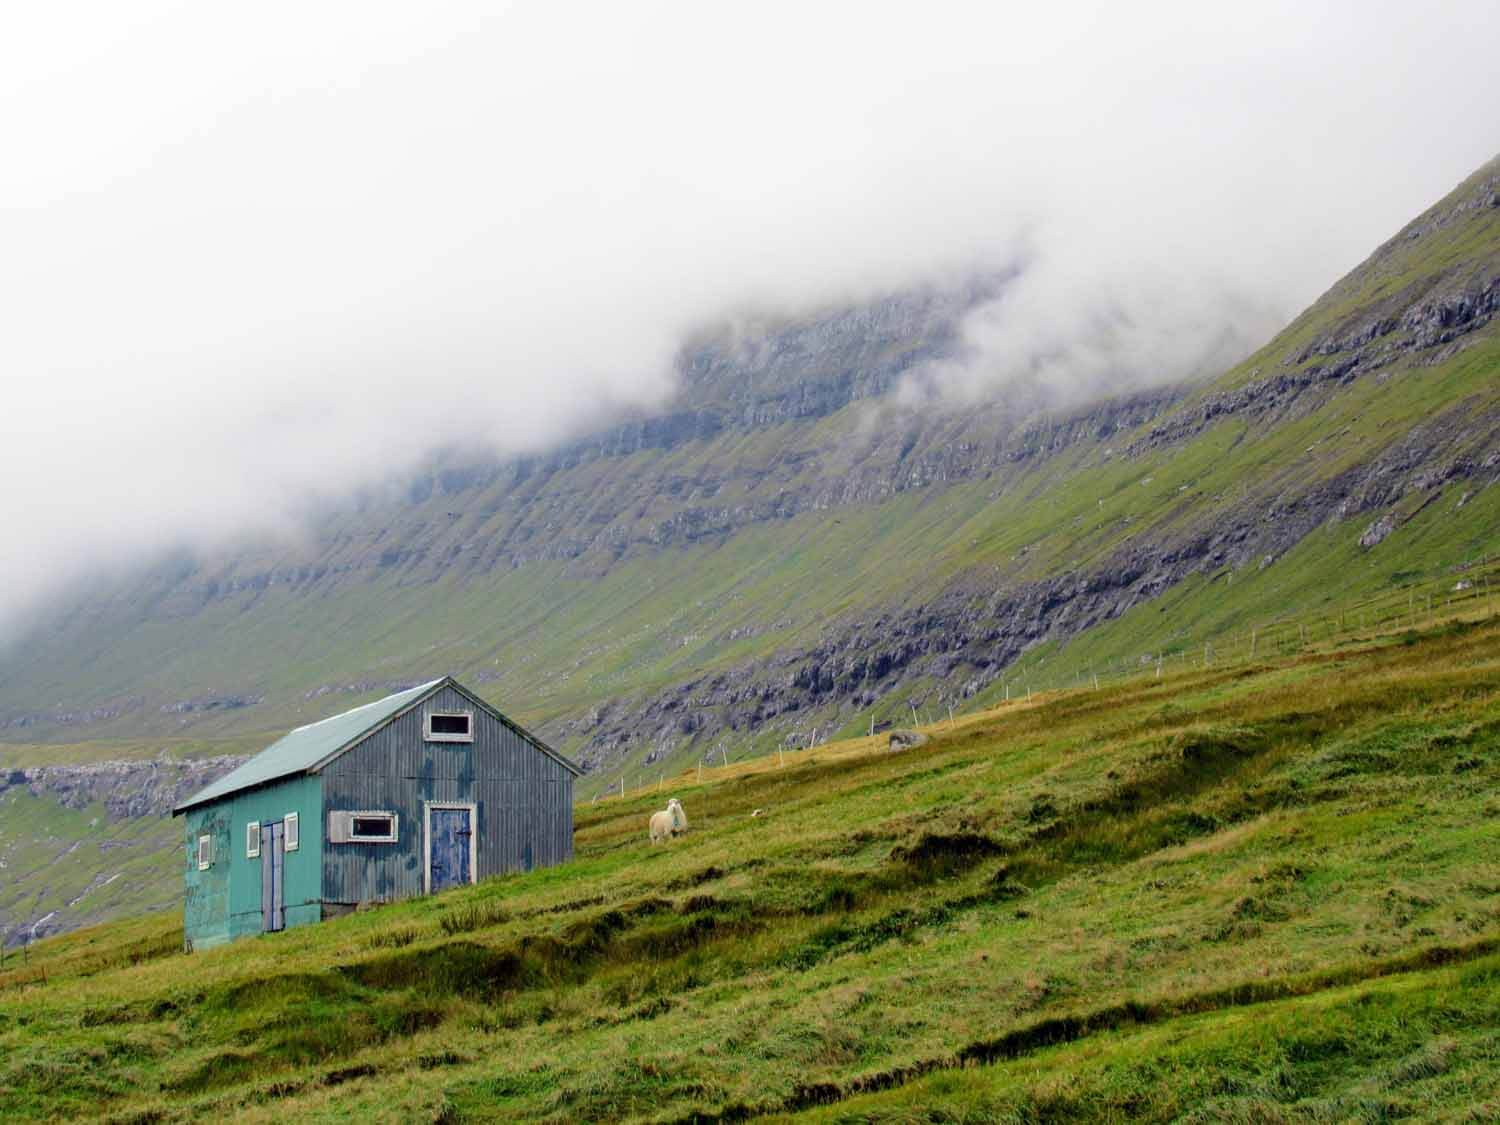 denmark-faroe-islands-bordoy-klaksvic-shack-clouds.jpg